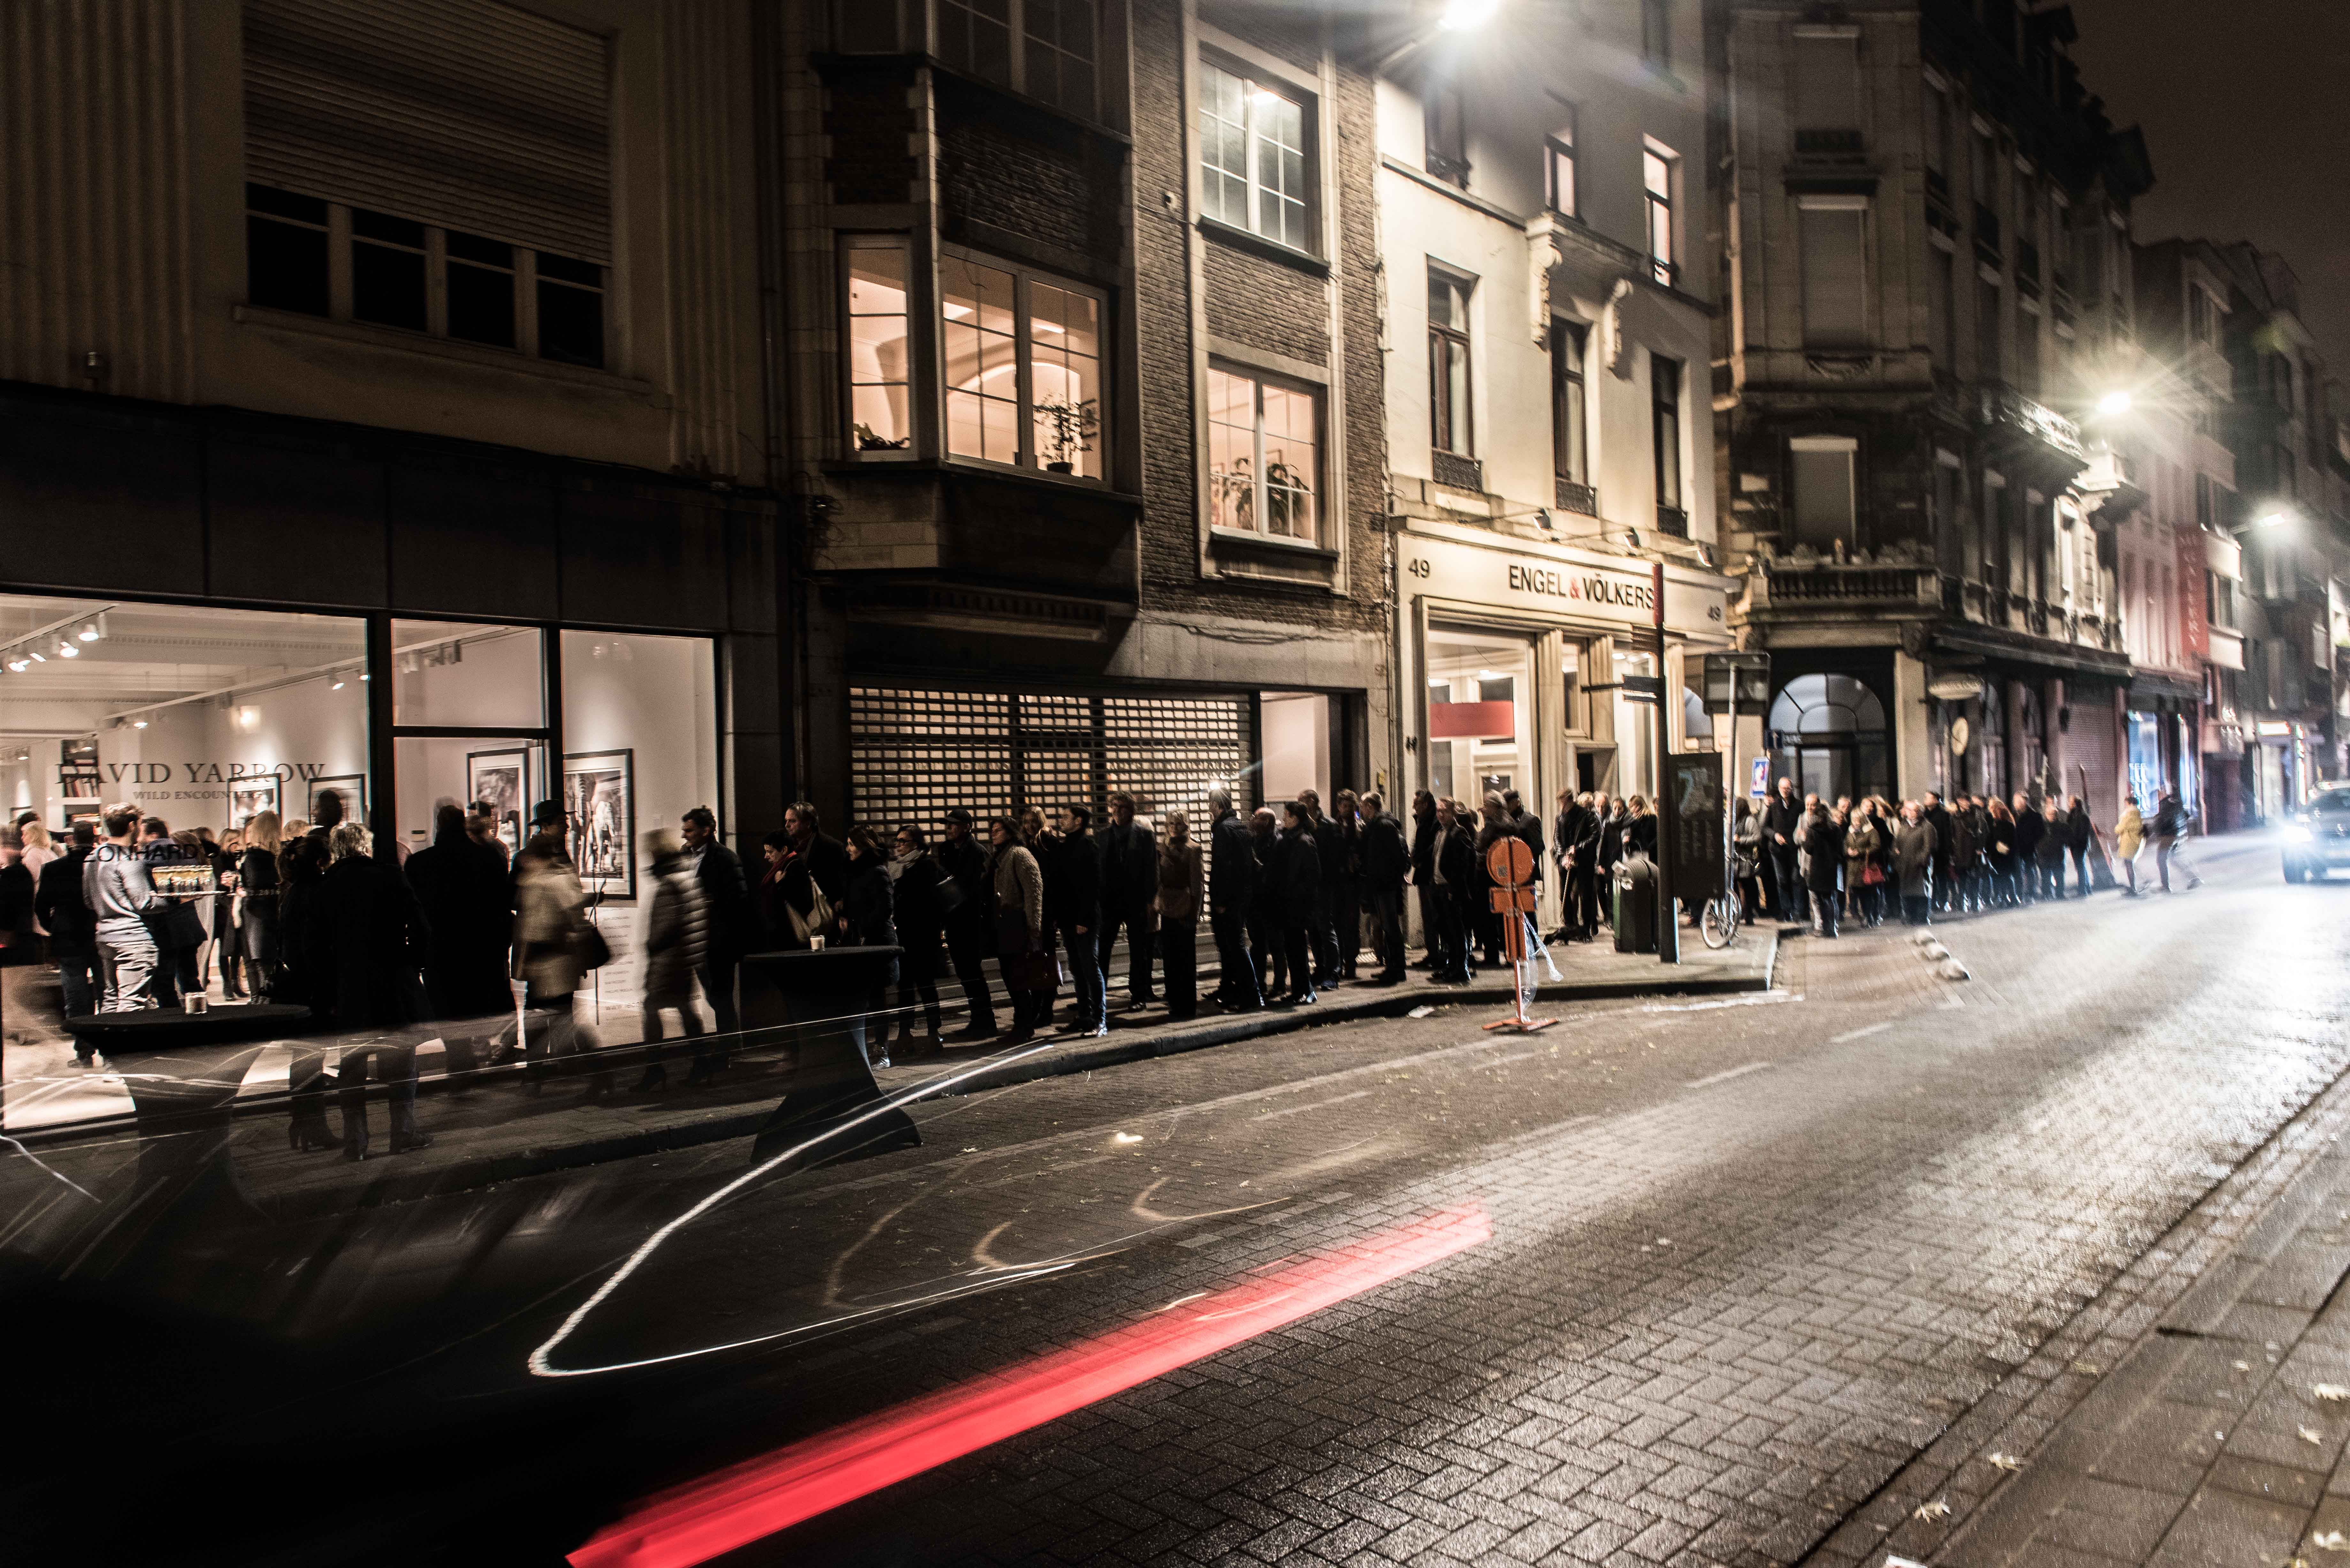 Long line for entrance to Vernissage David Yarrow at Leonhard's Gallery